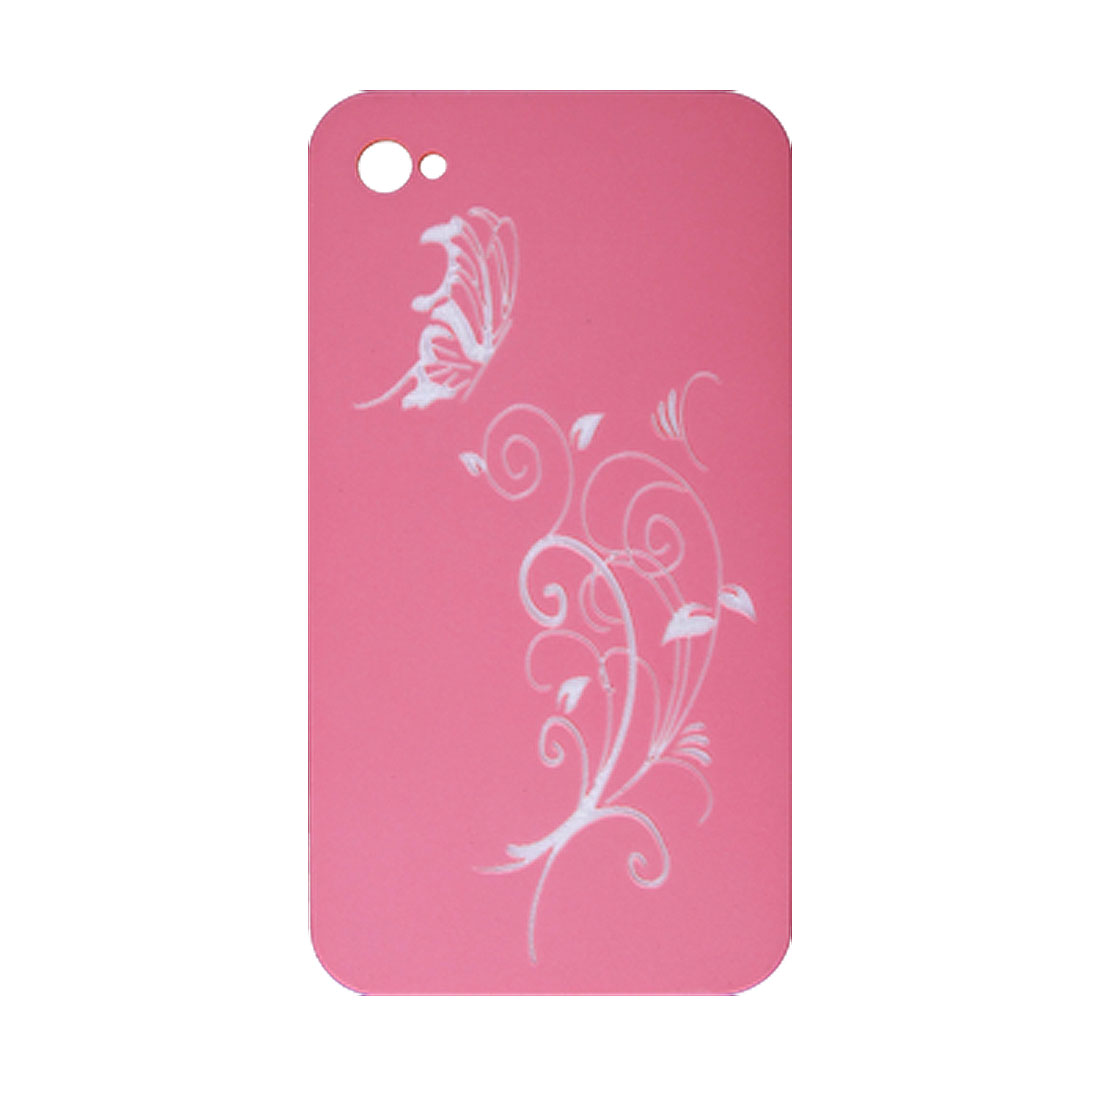 Dark Pink Non Slip Hard Plastic Protector w Car Caharger for iPhone 4